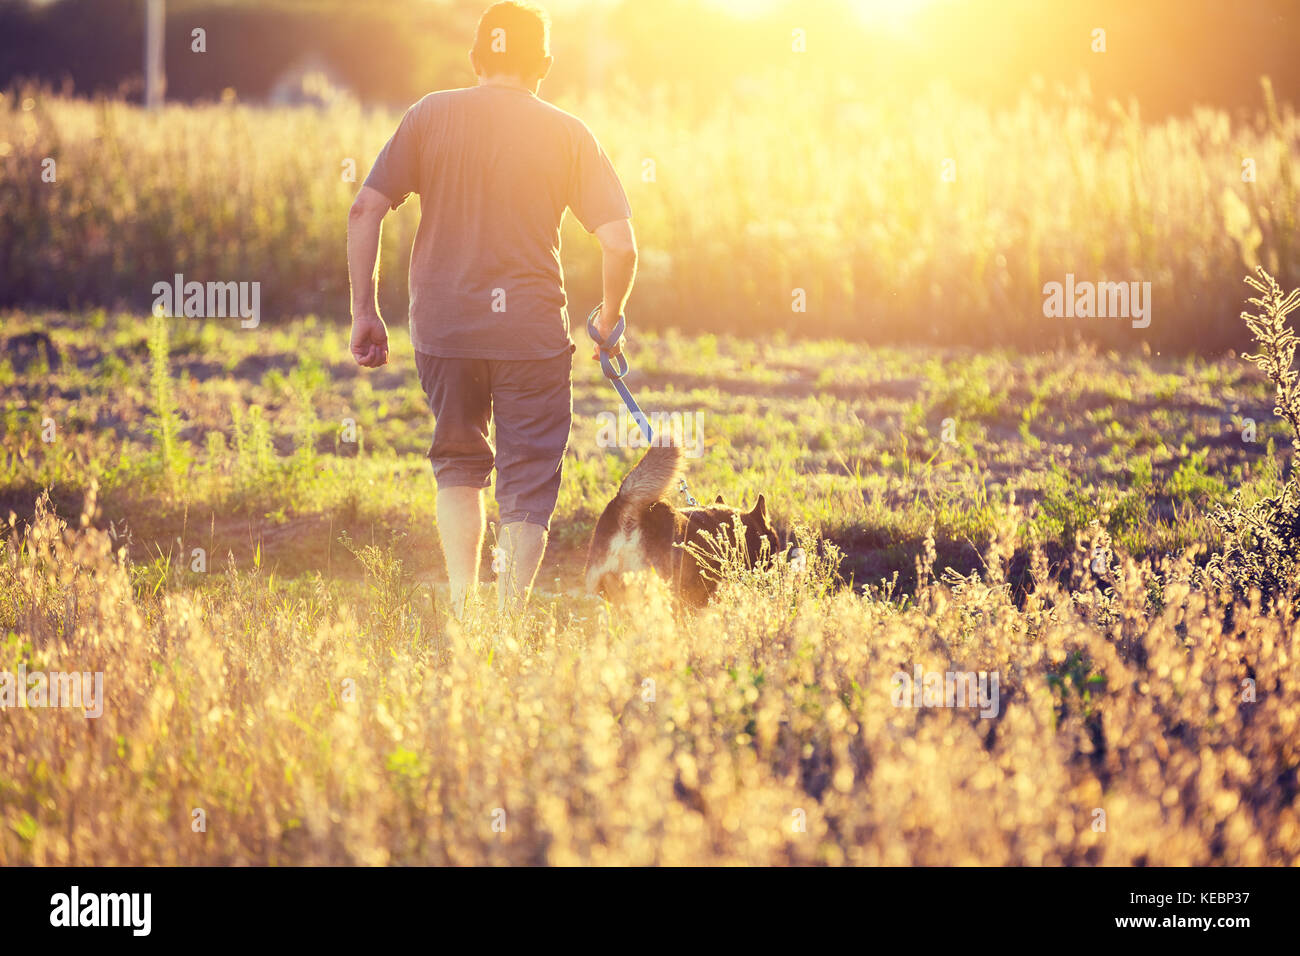 Man with dog on a leash running in an oat field in summer - Stock Image